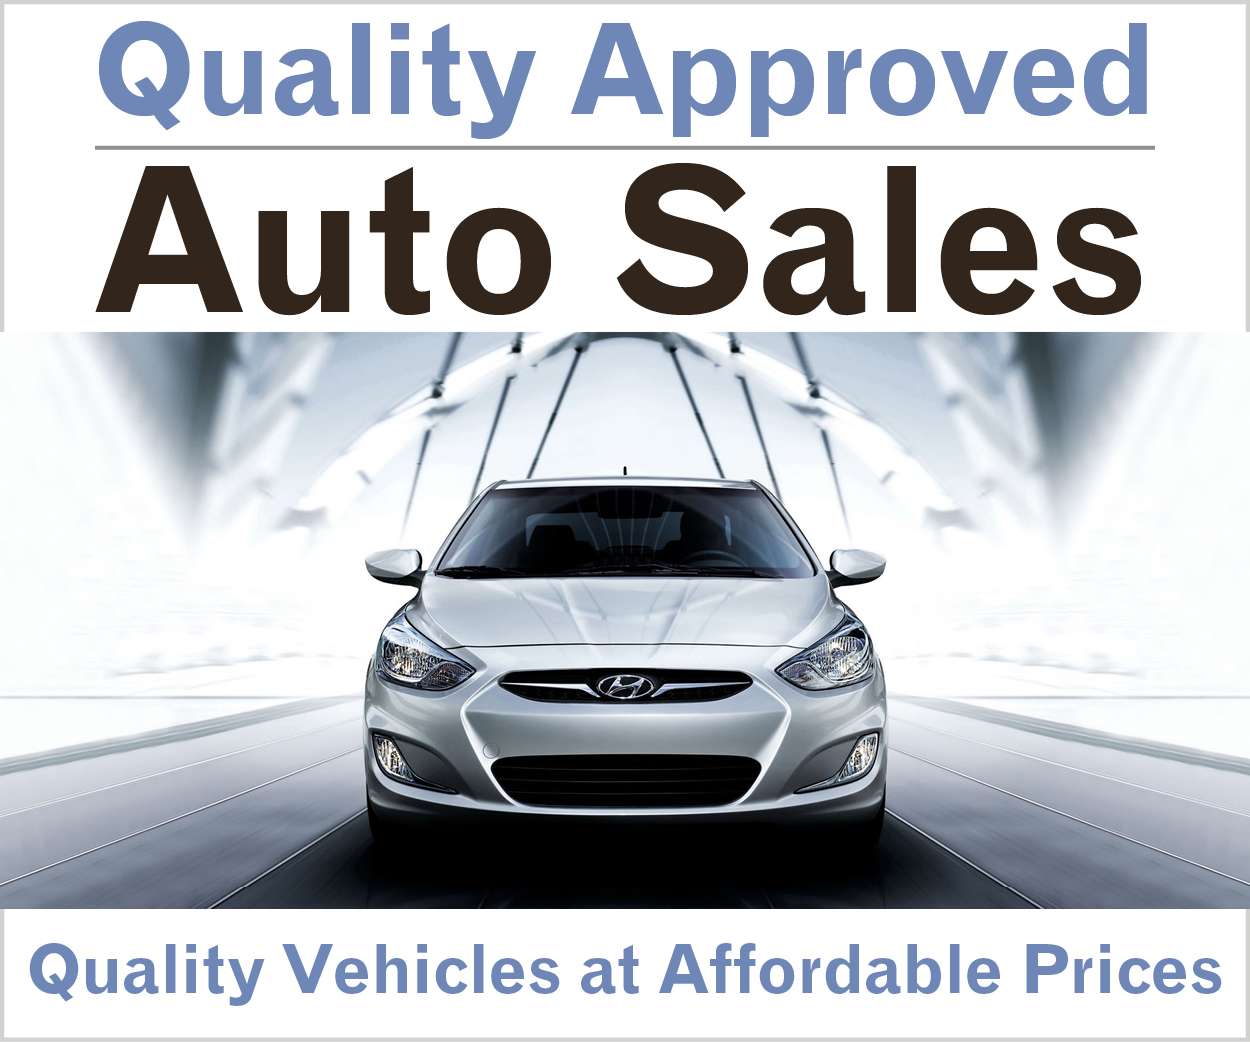 More from Quality Approved Auto Sales